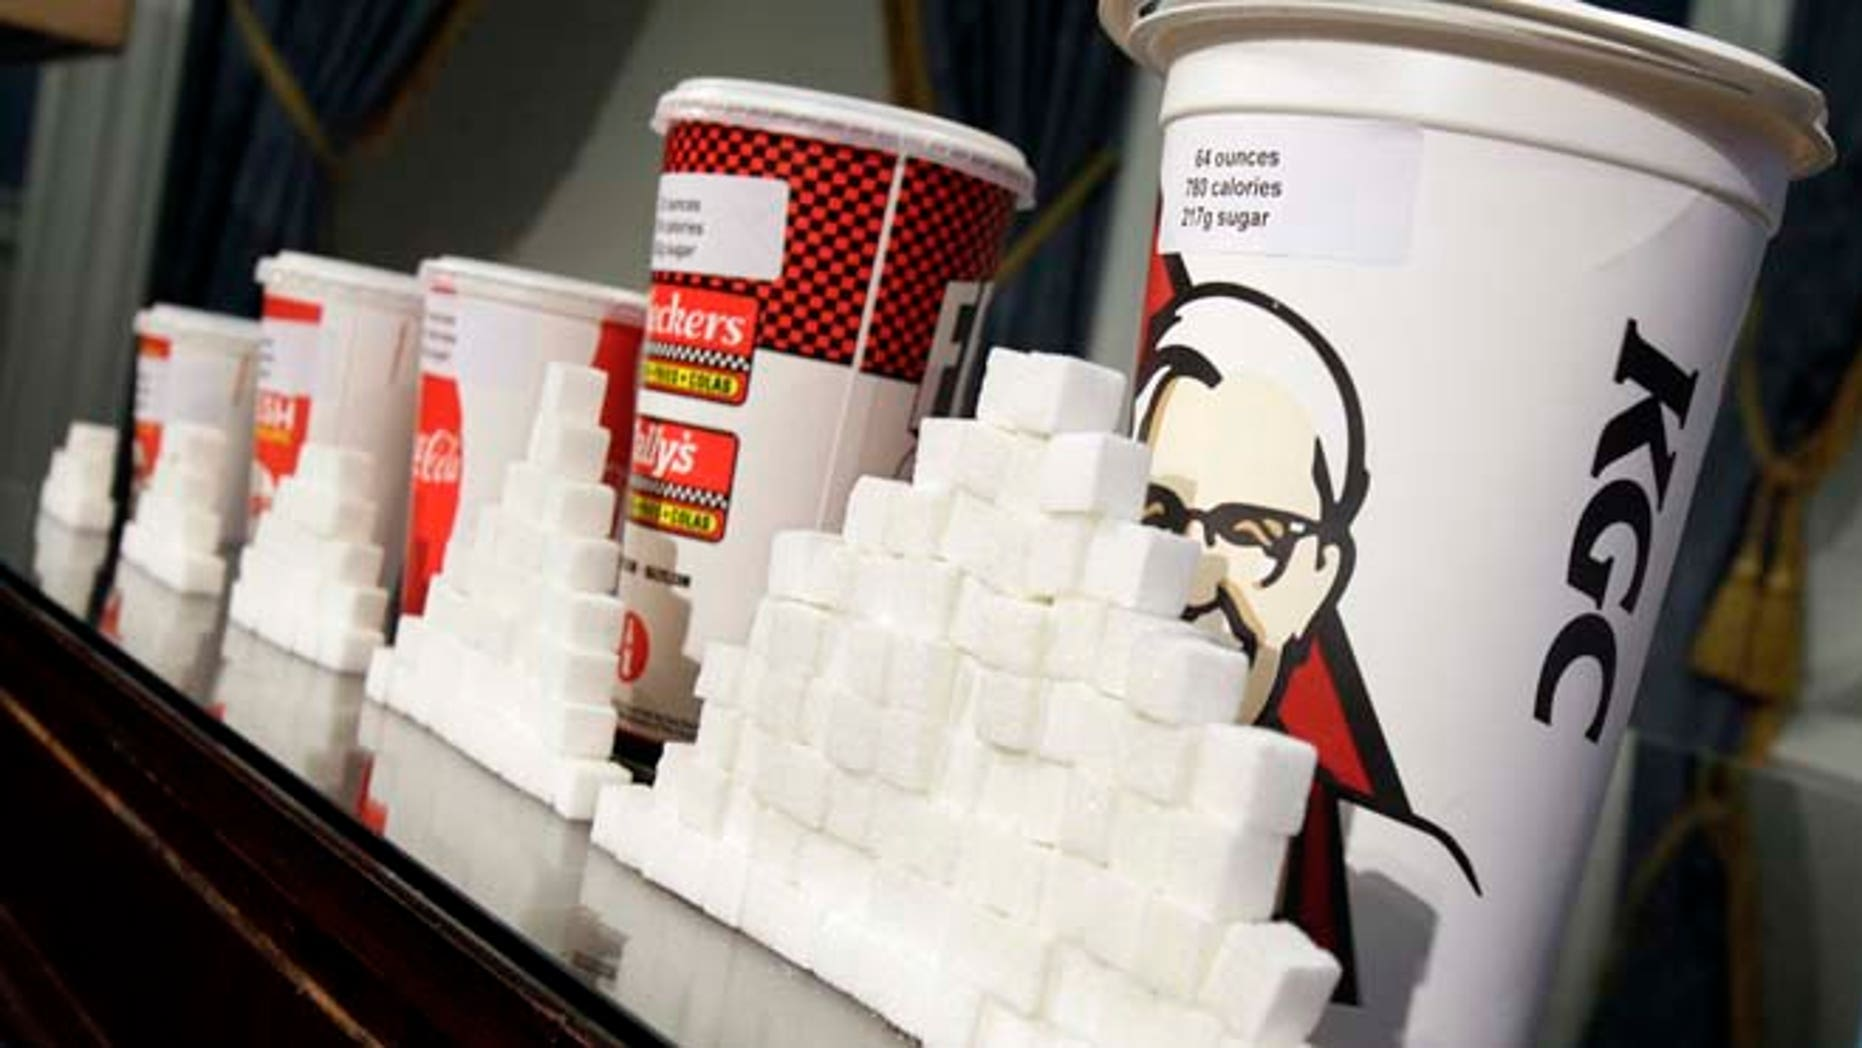 May 31, 2012: This file photo shows a display of various size cups and sugar cubes at a news conference at New York's City Hall. (AP)